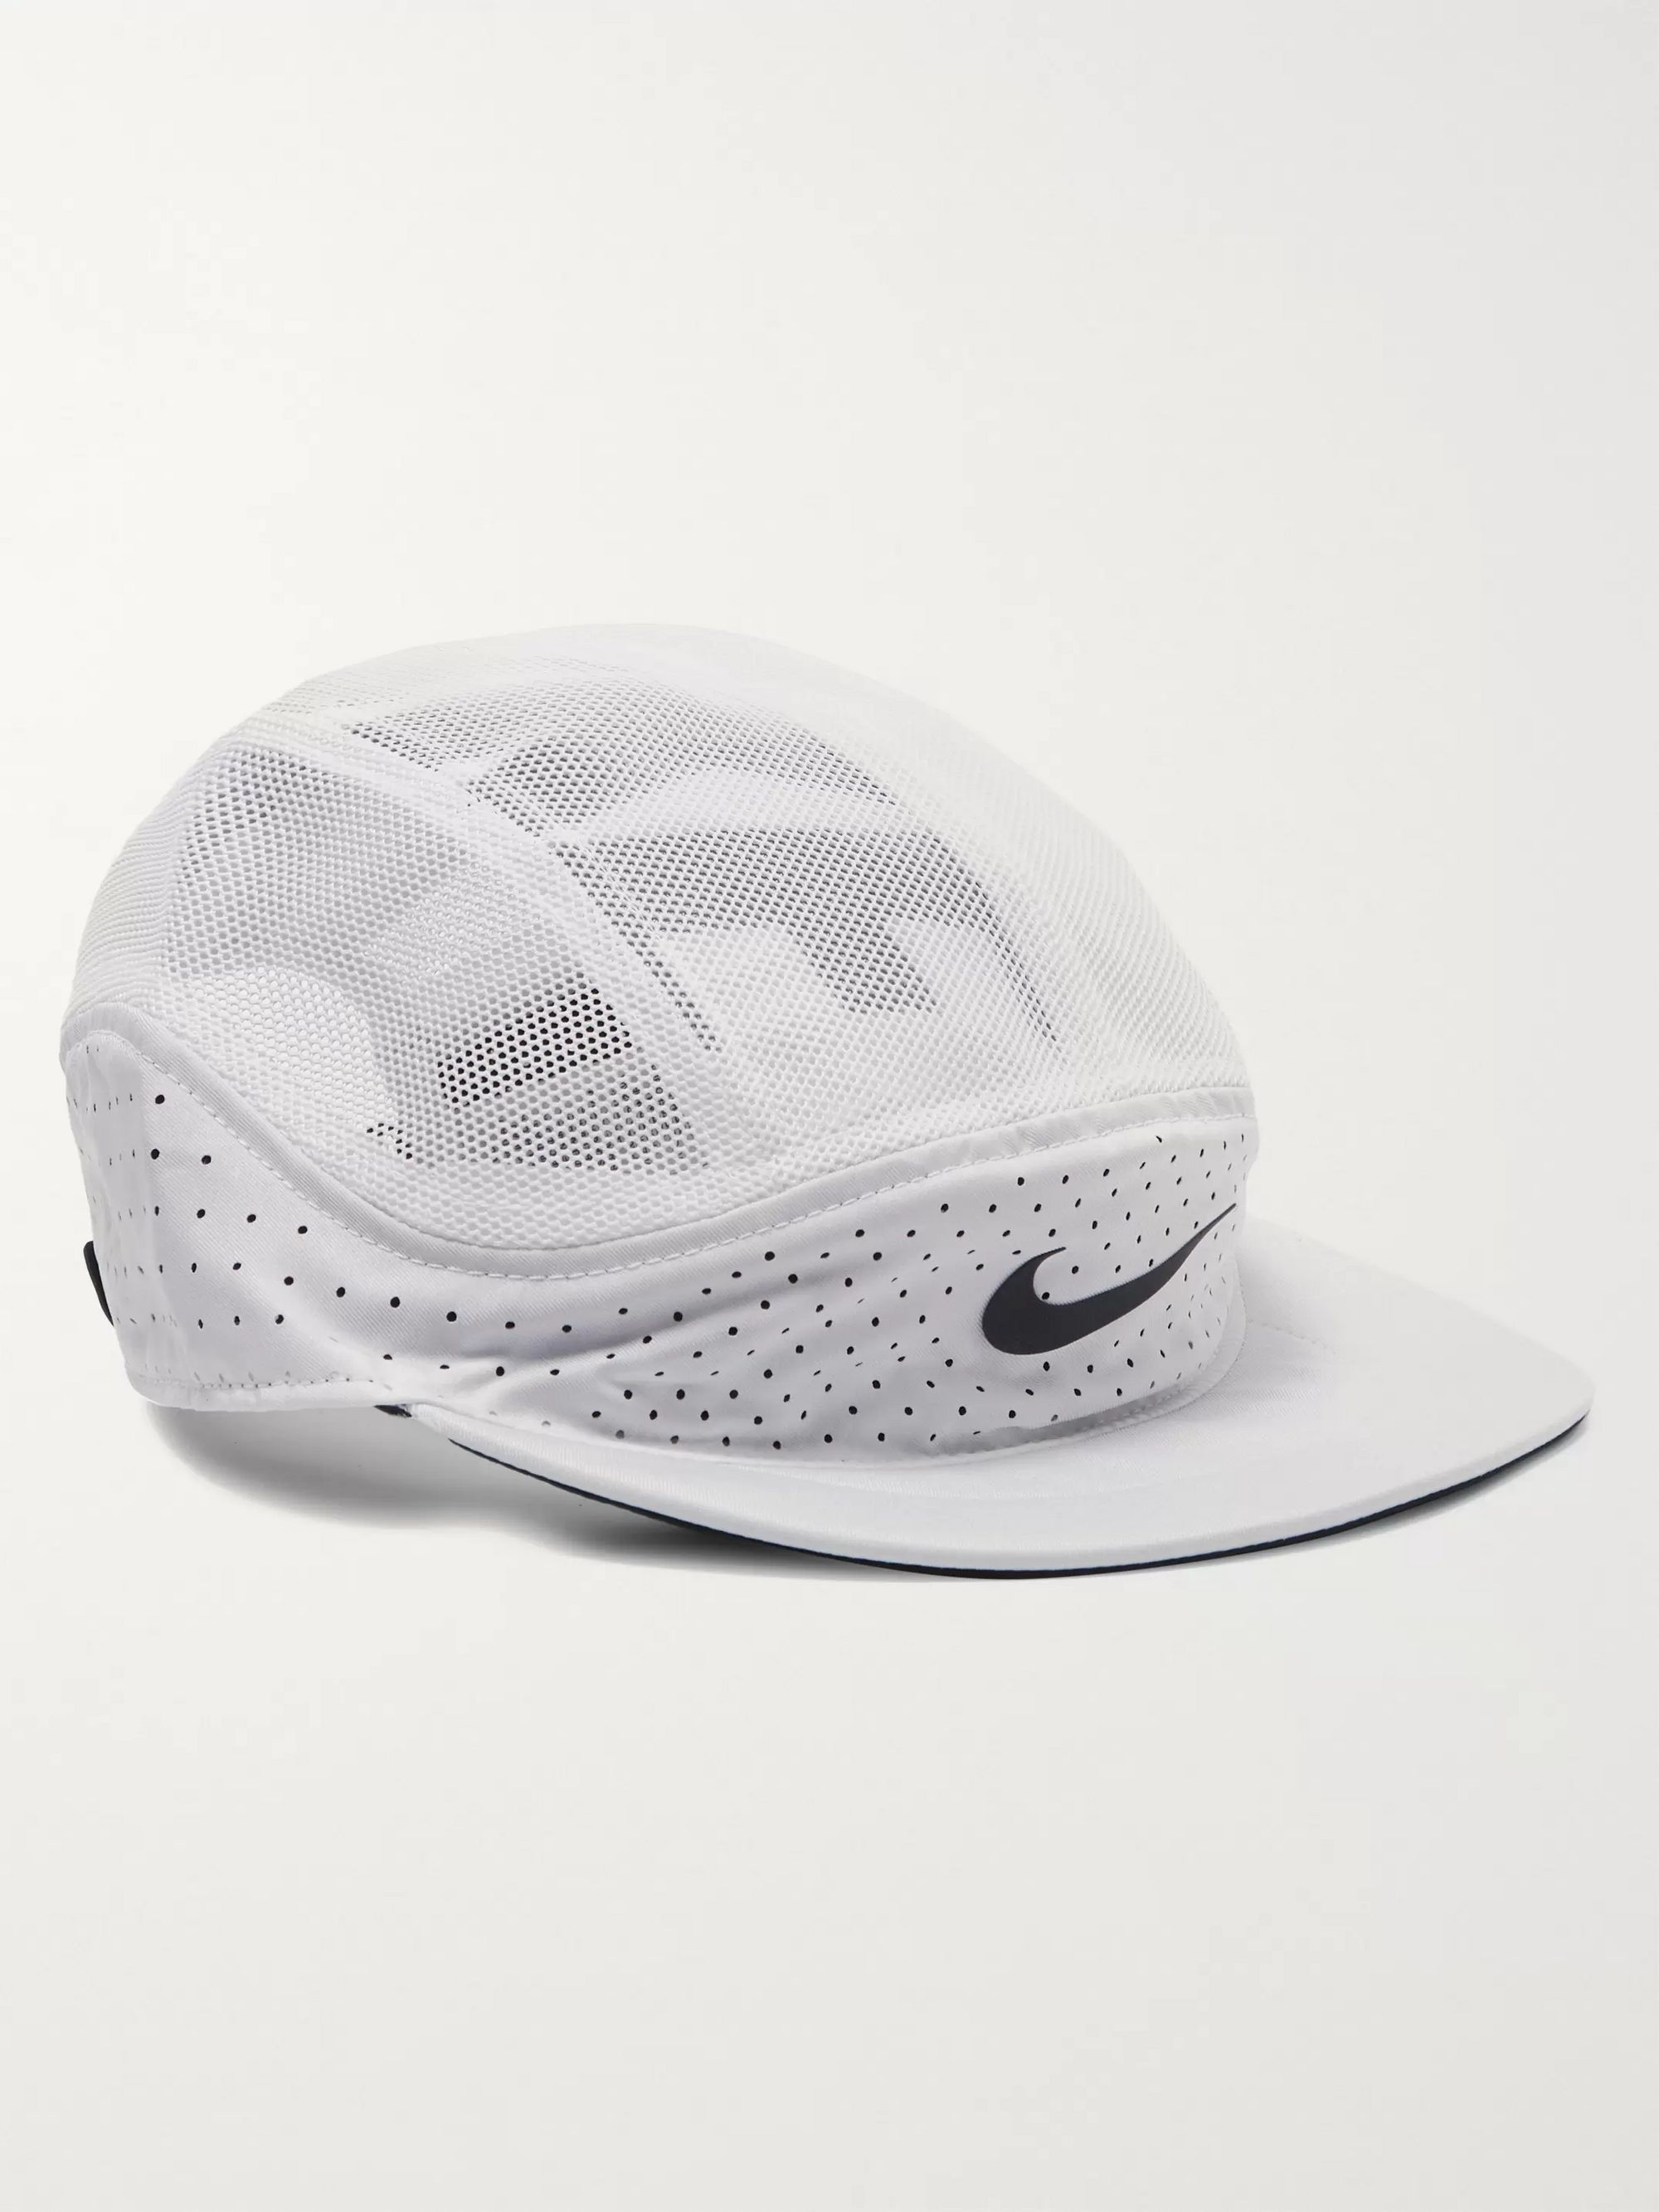 AeroBill Tailwind Perforated Shell and Mesh Dri FIT Cap